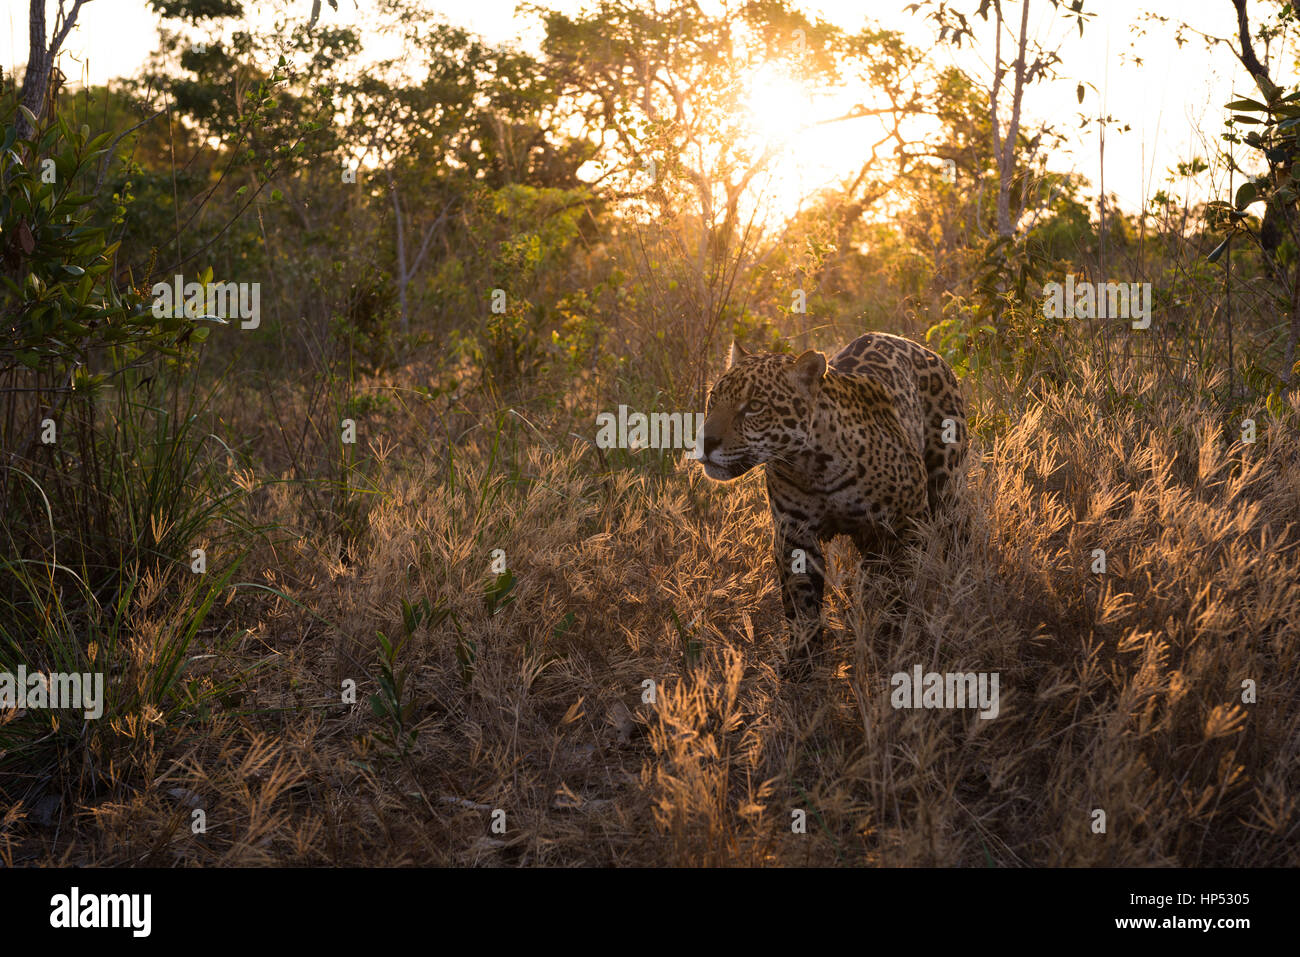 Jaguar exploring the Cerrado Stock Photo